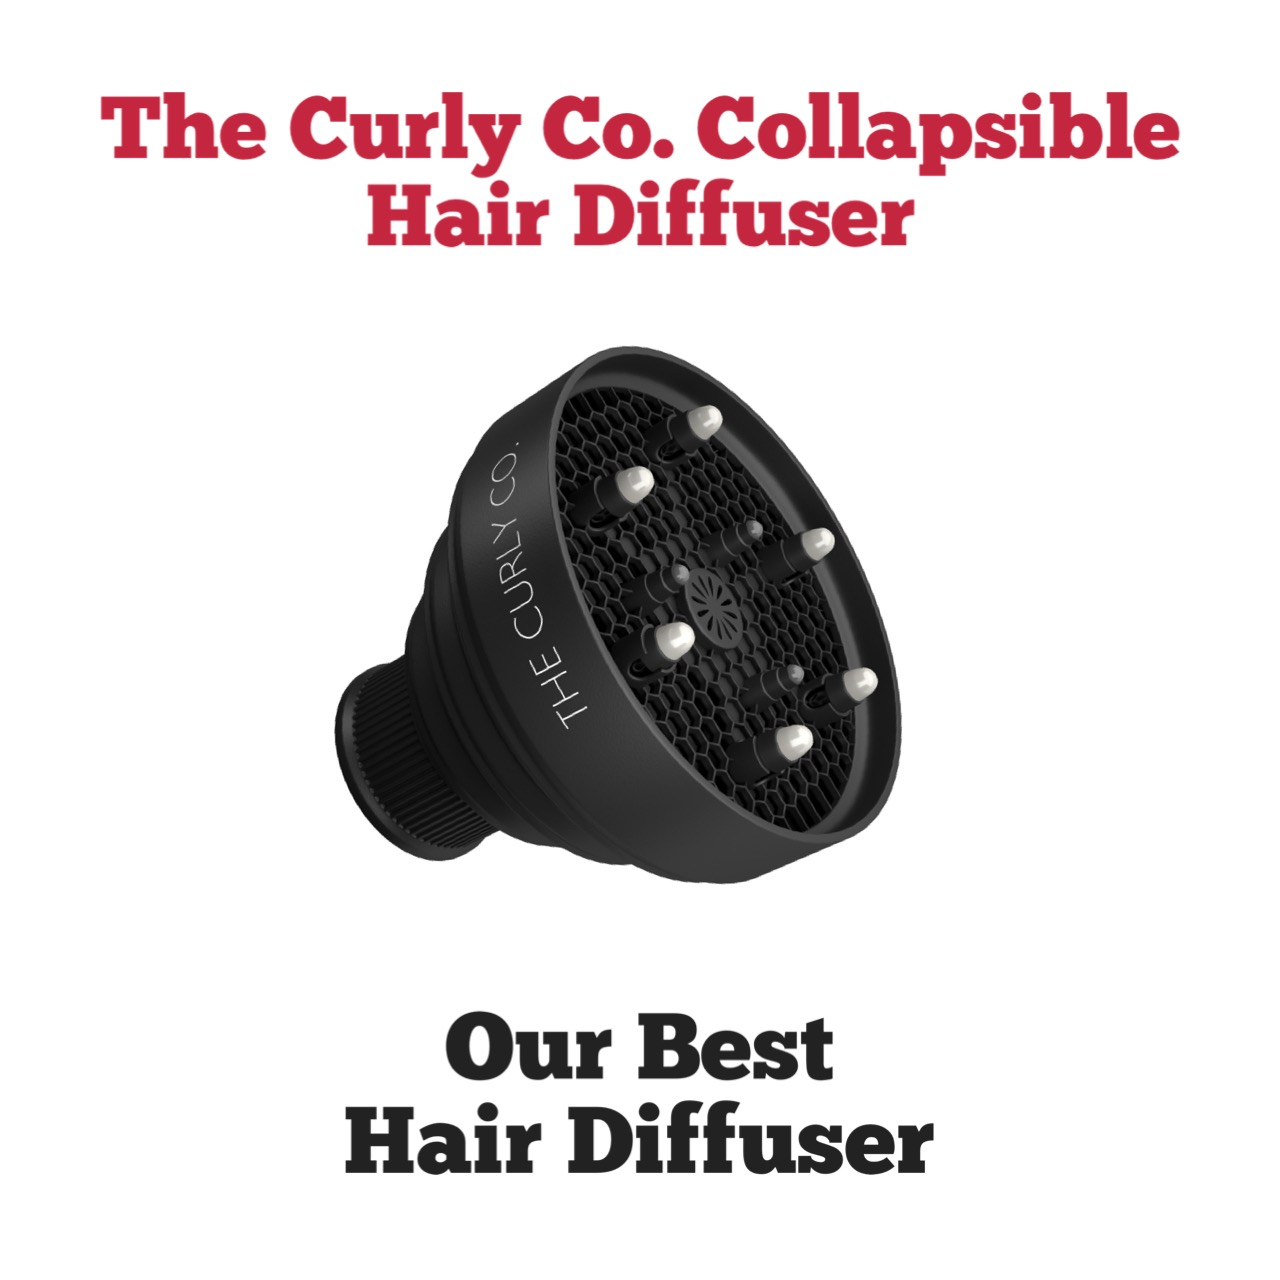 The Curly Co Collapsible Diffuser